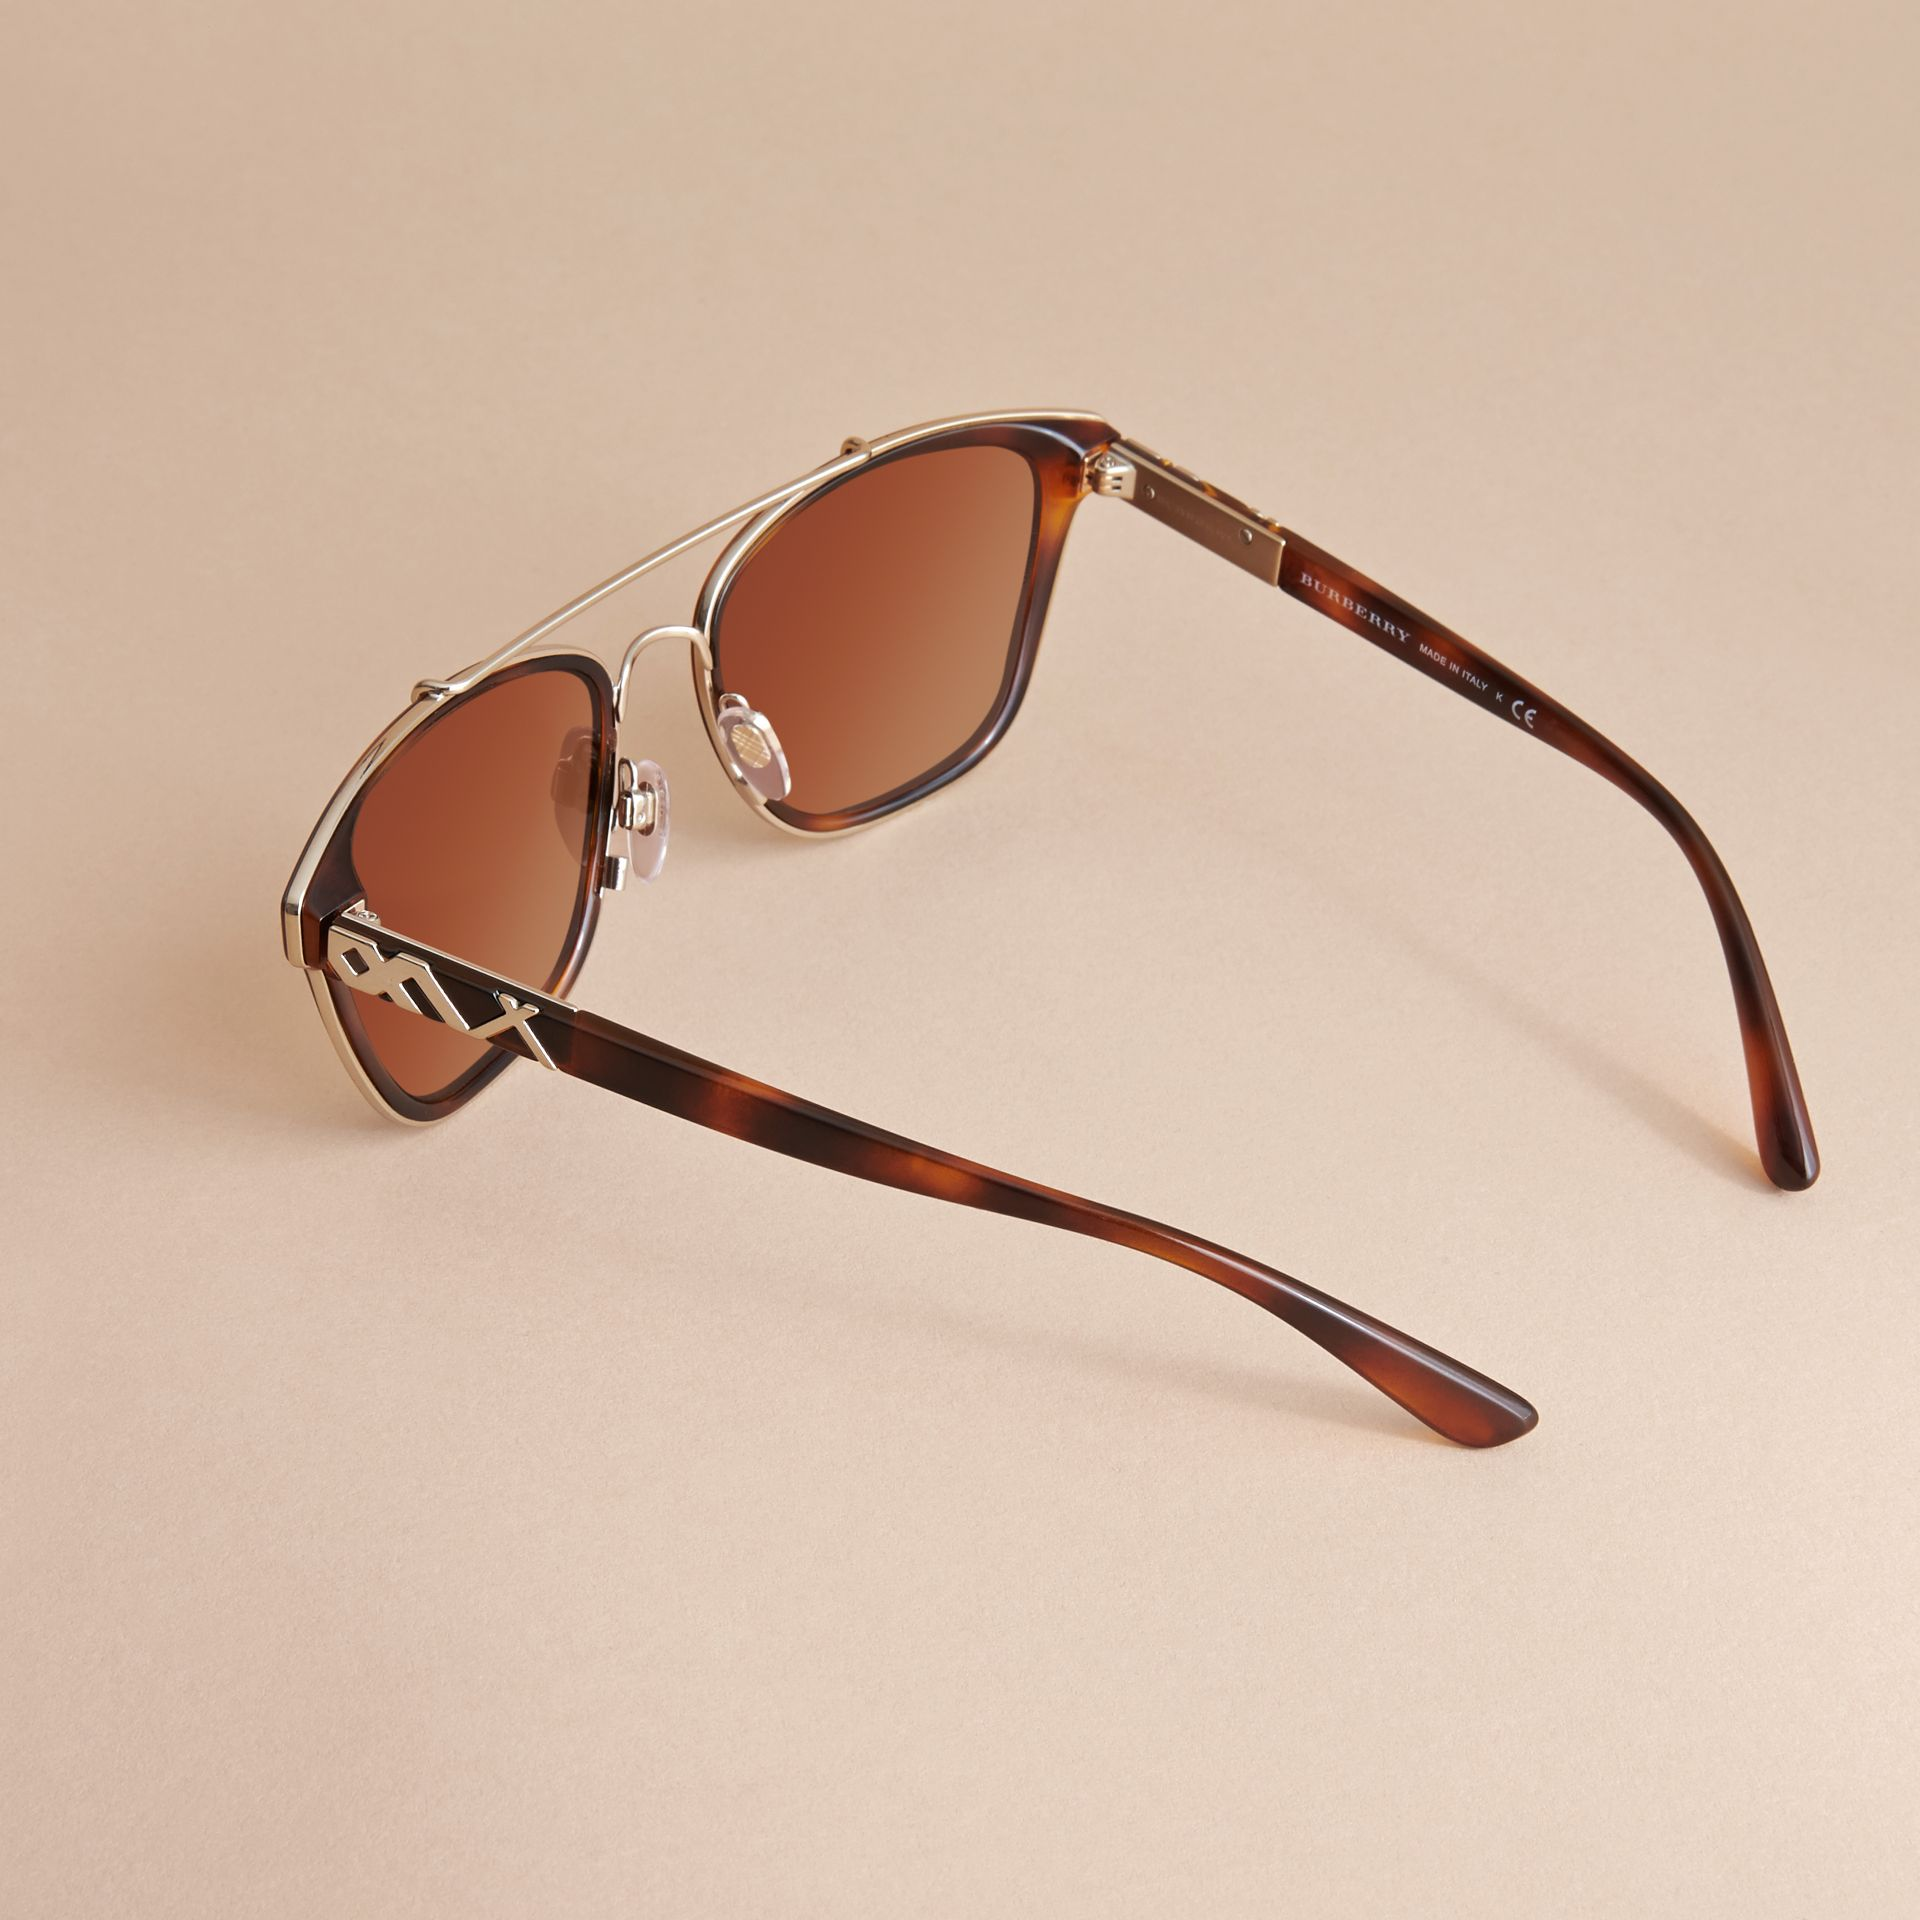 Top Bar Square Frame Sunglasses in Tortoiseshell - gallery image 4